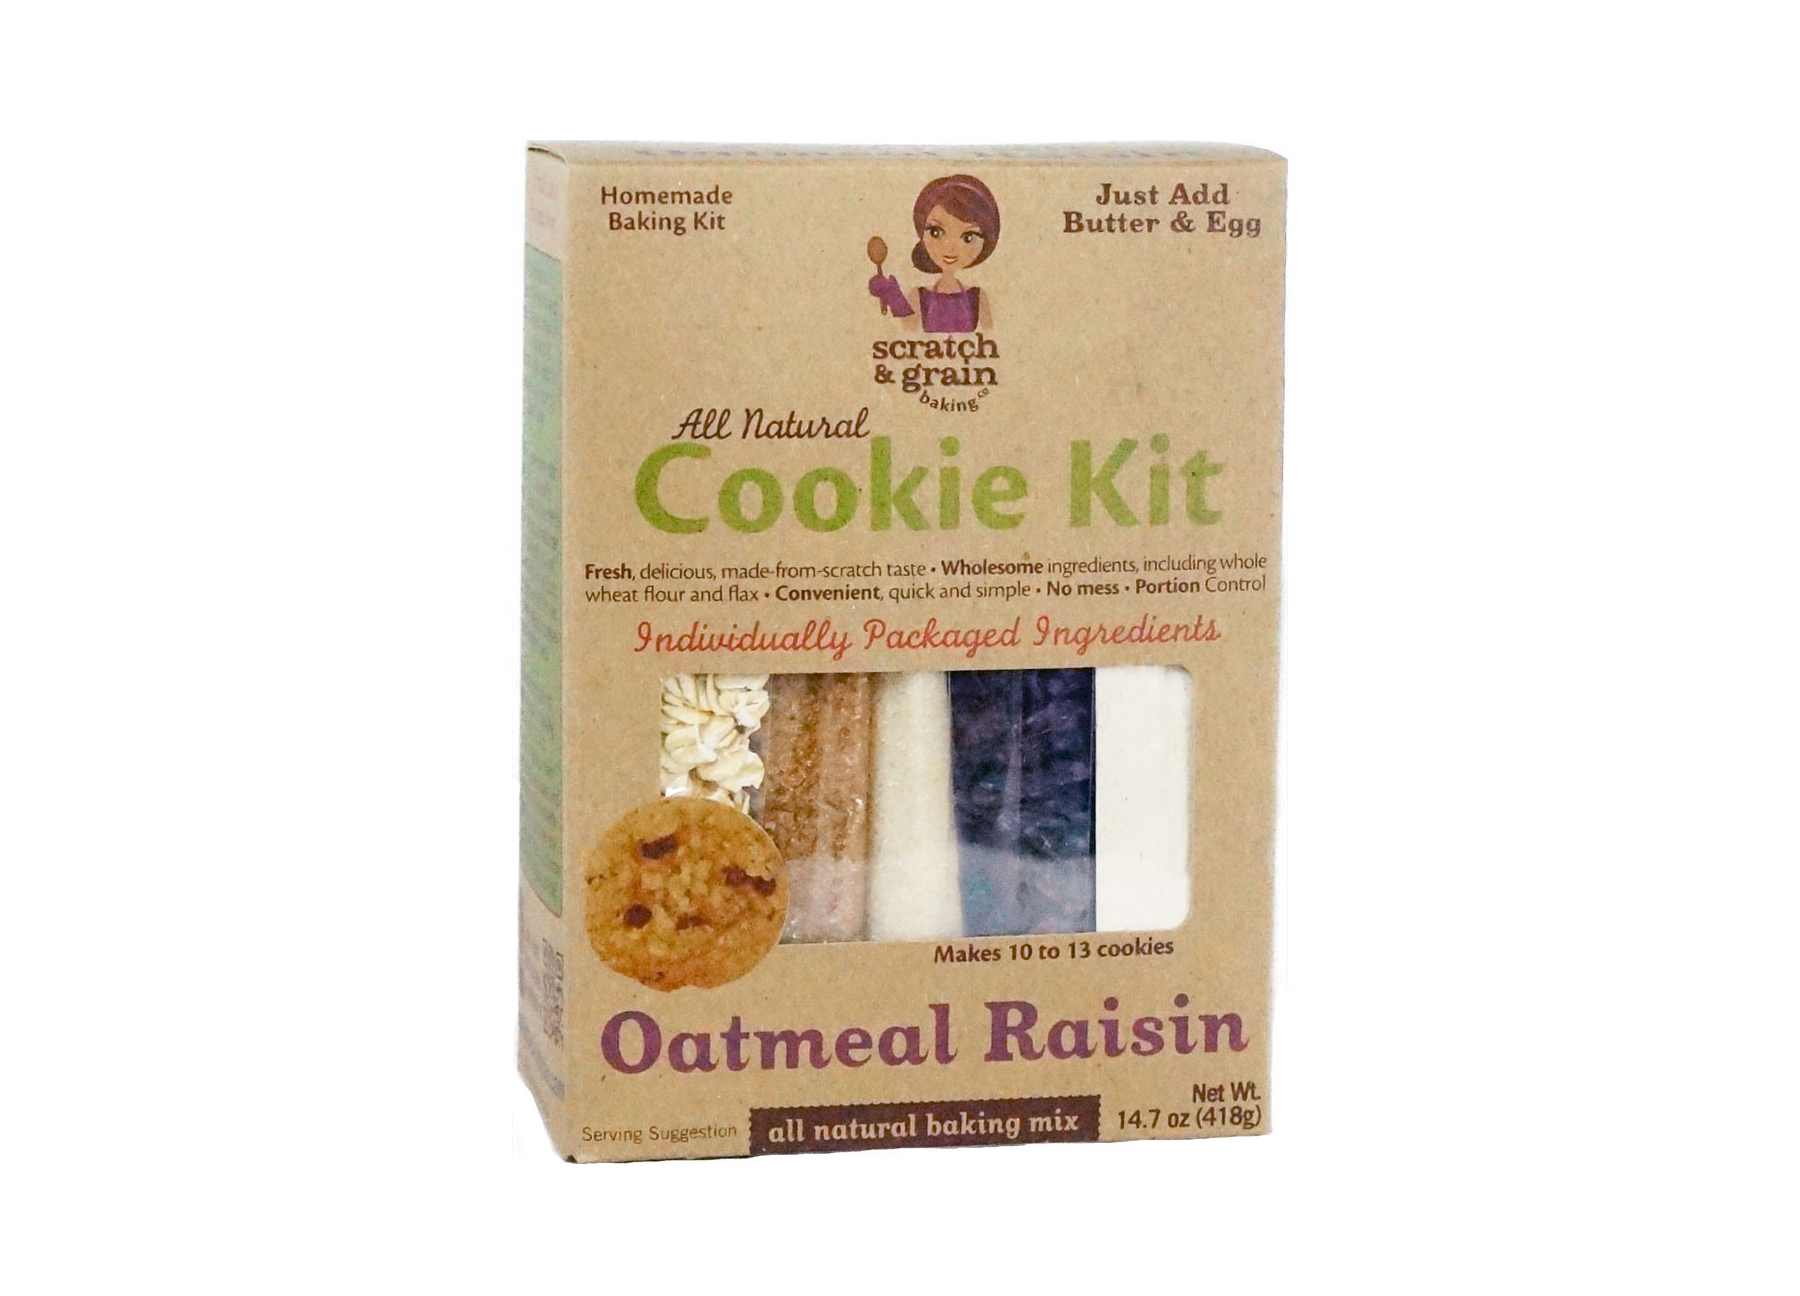 Scratch and Grain Oatmeal Raisin Cookie Kit